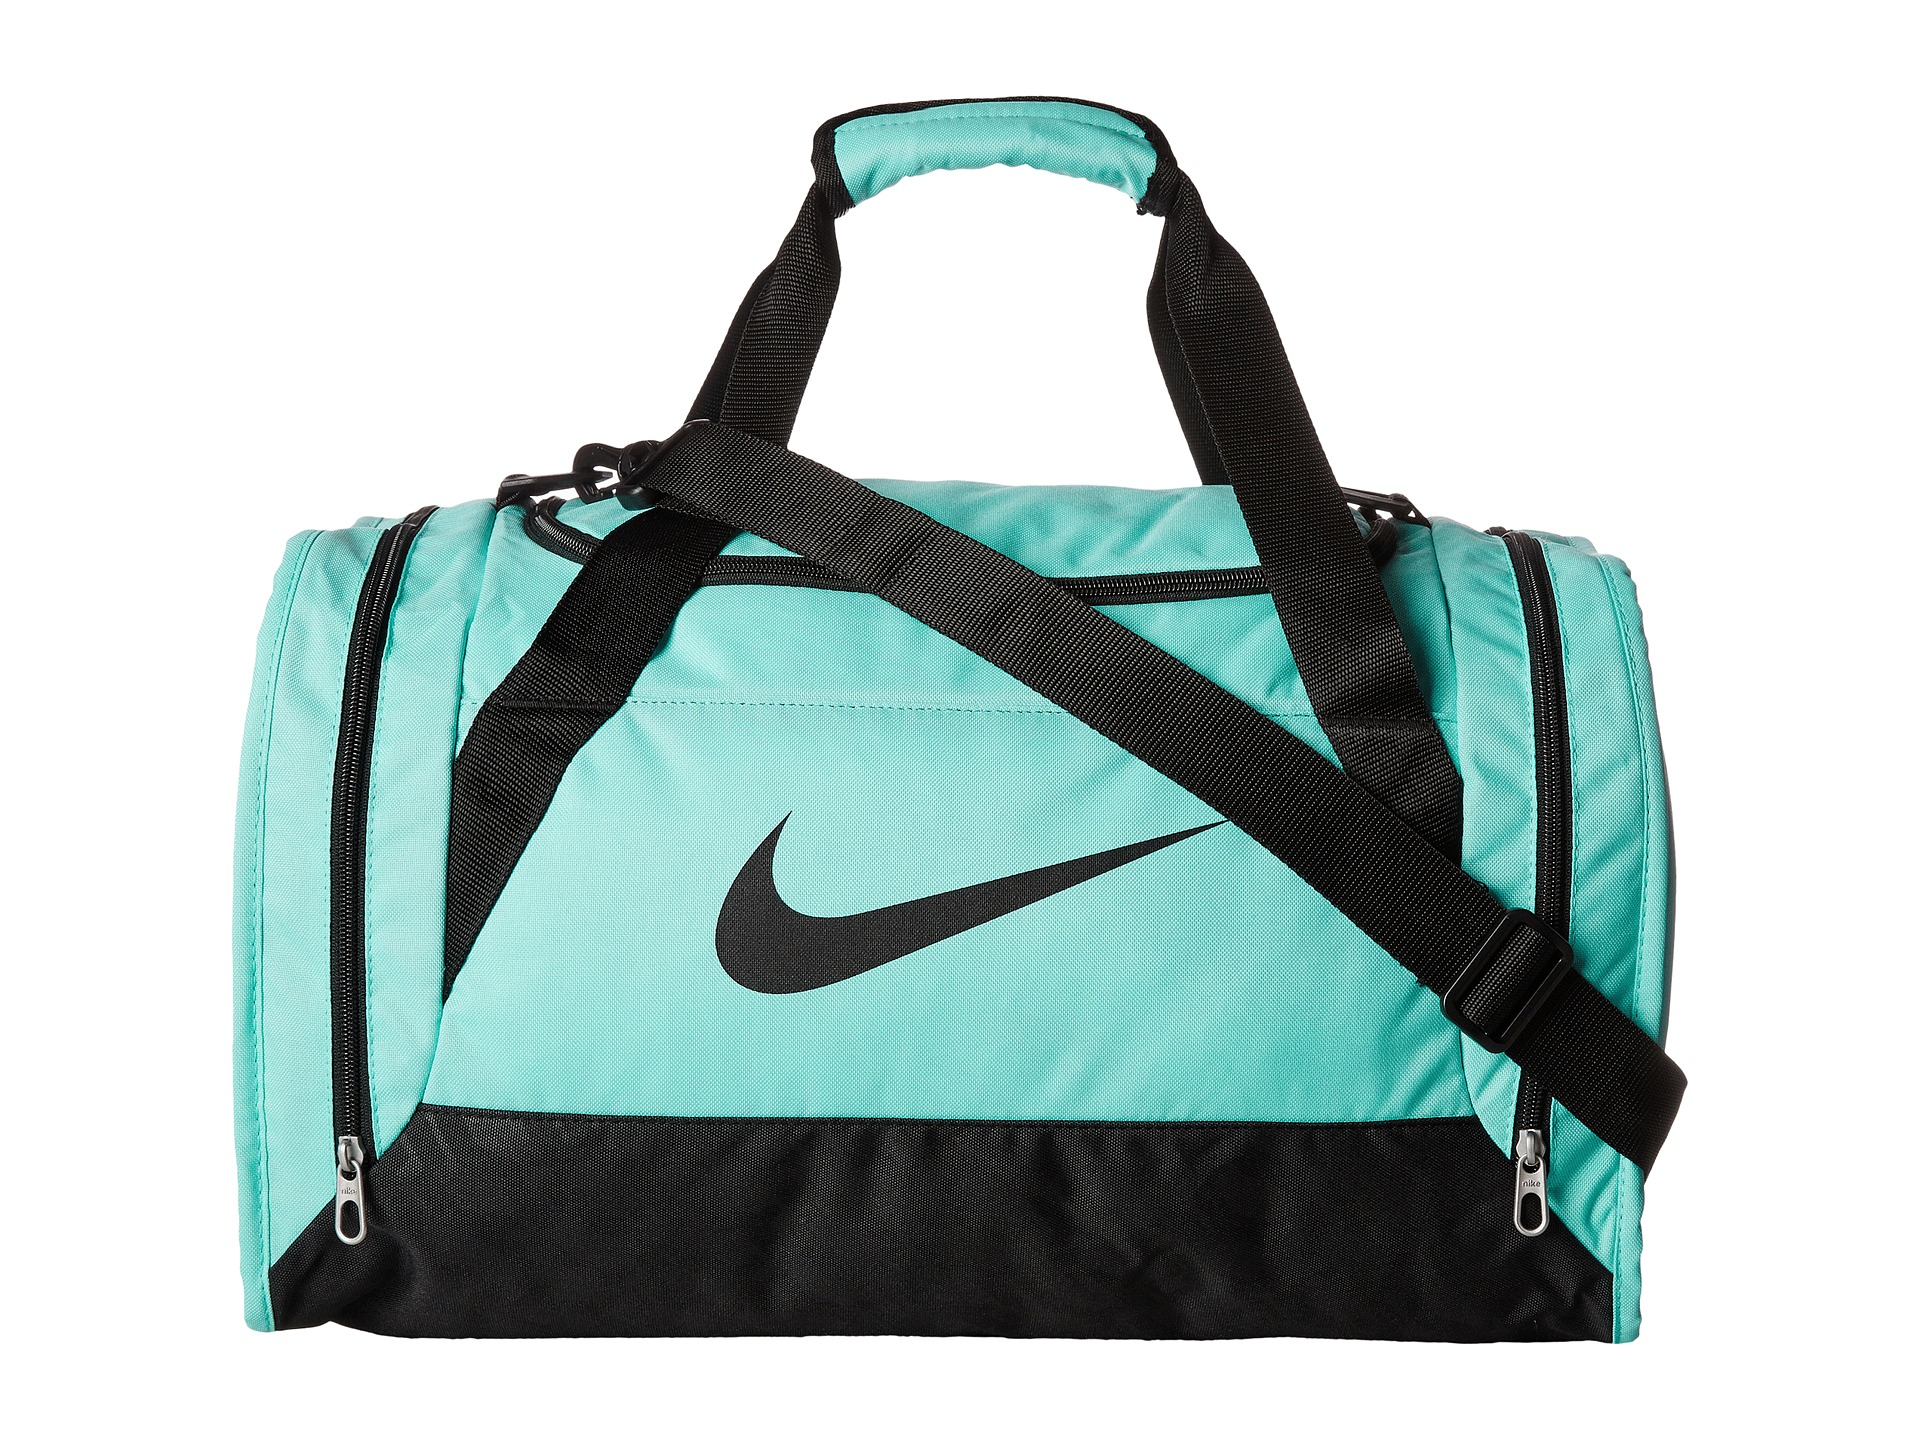 Nike Brasilia Training Duffel Bag Small Blue  c4ddd9c7ca007